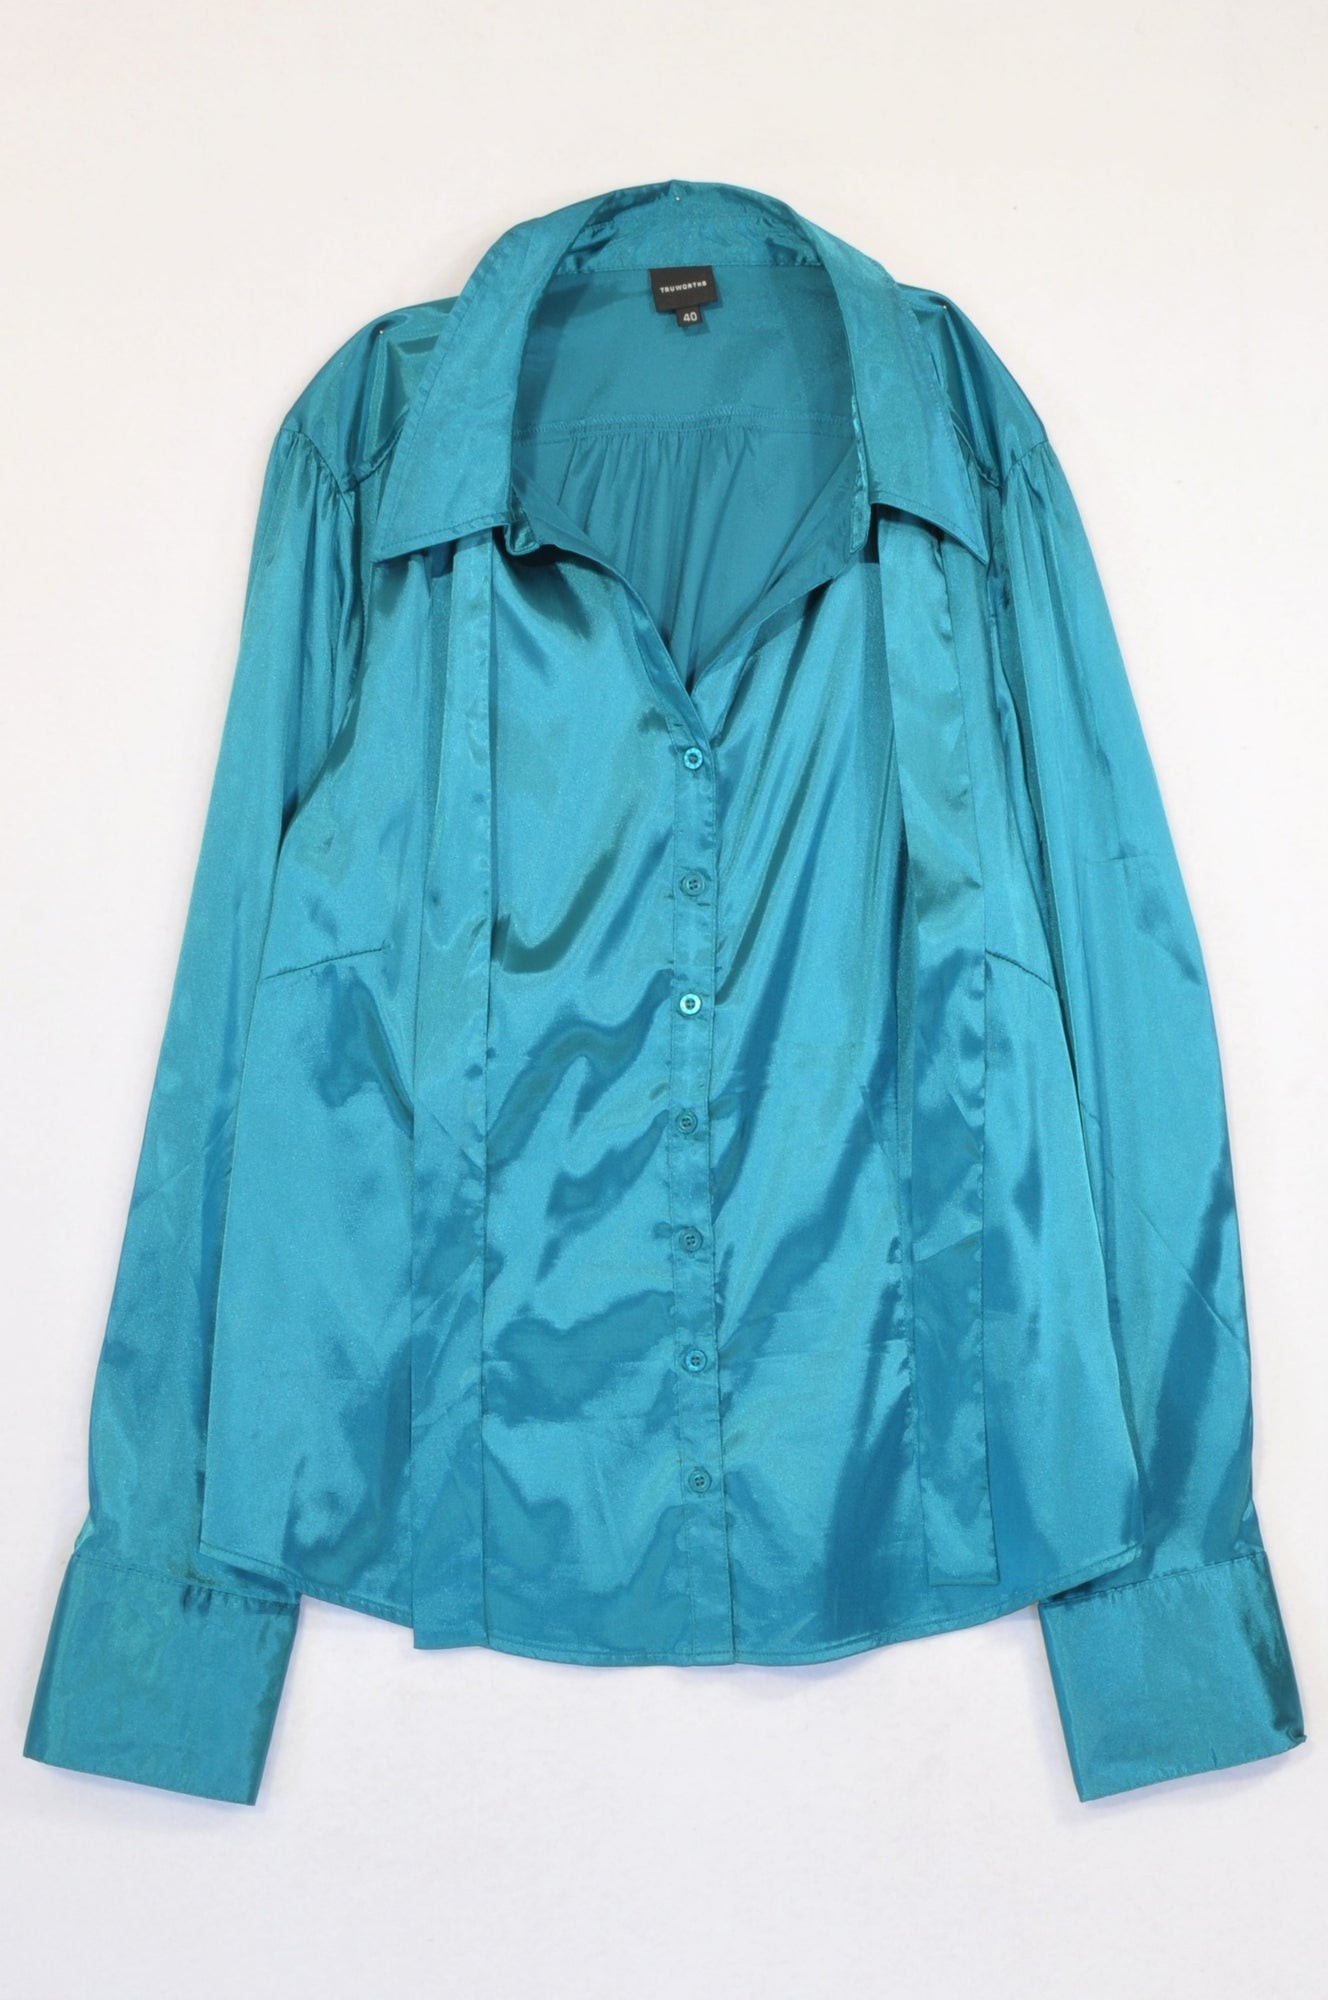 New Truworths Teal Satin Neck Tie Blouse Women Size 40